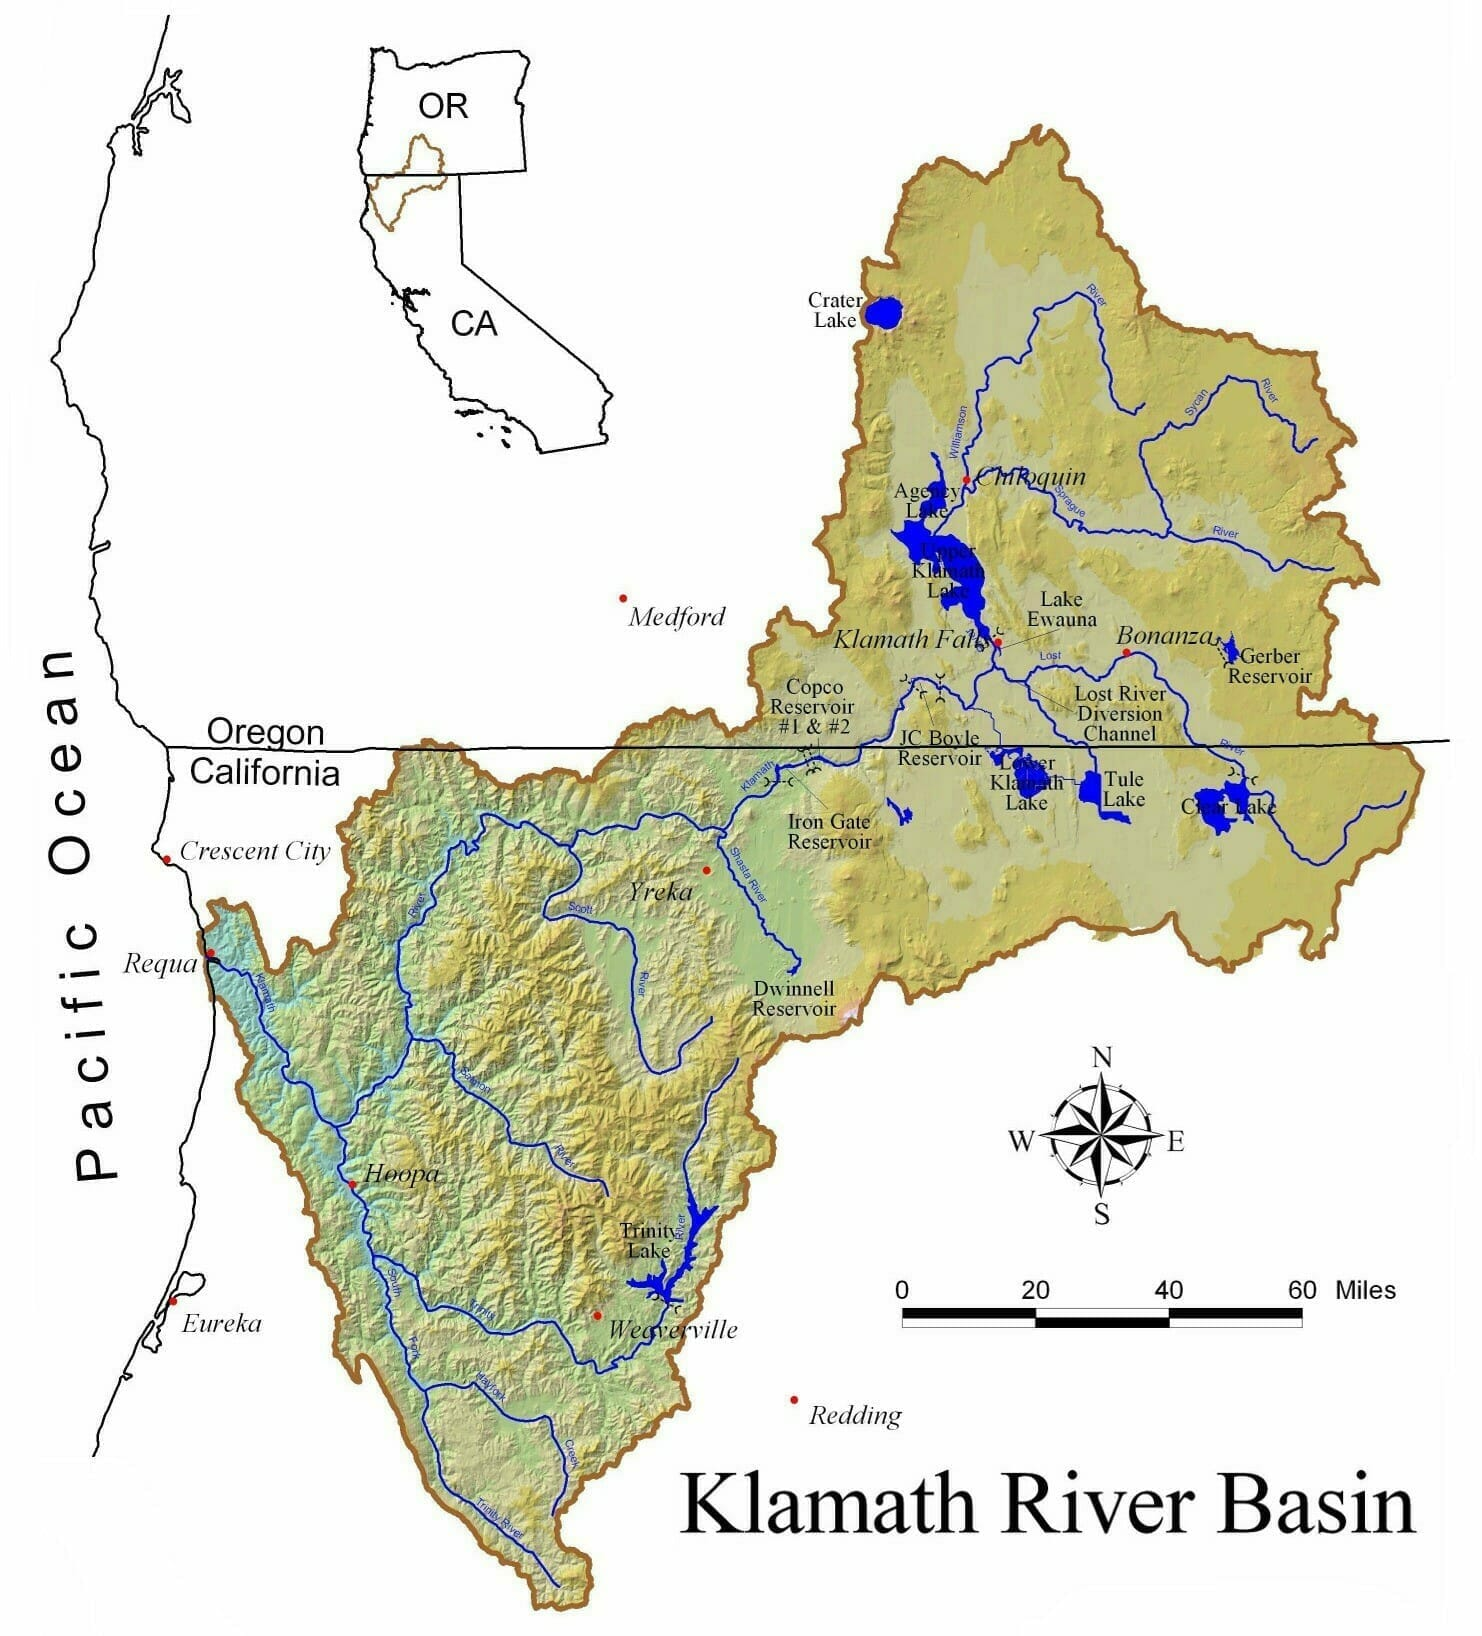 Map of Klamath River Basin